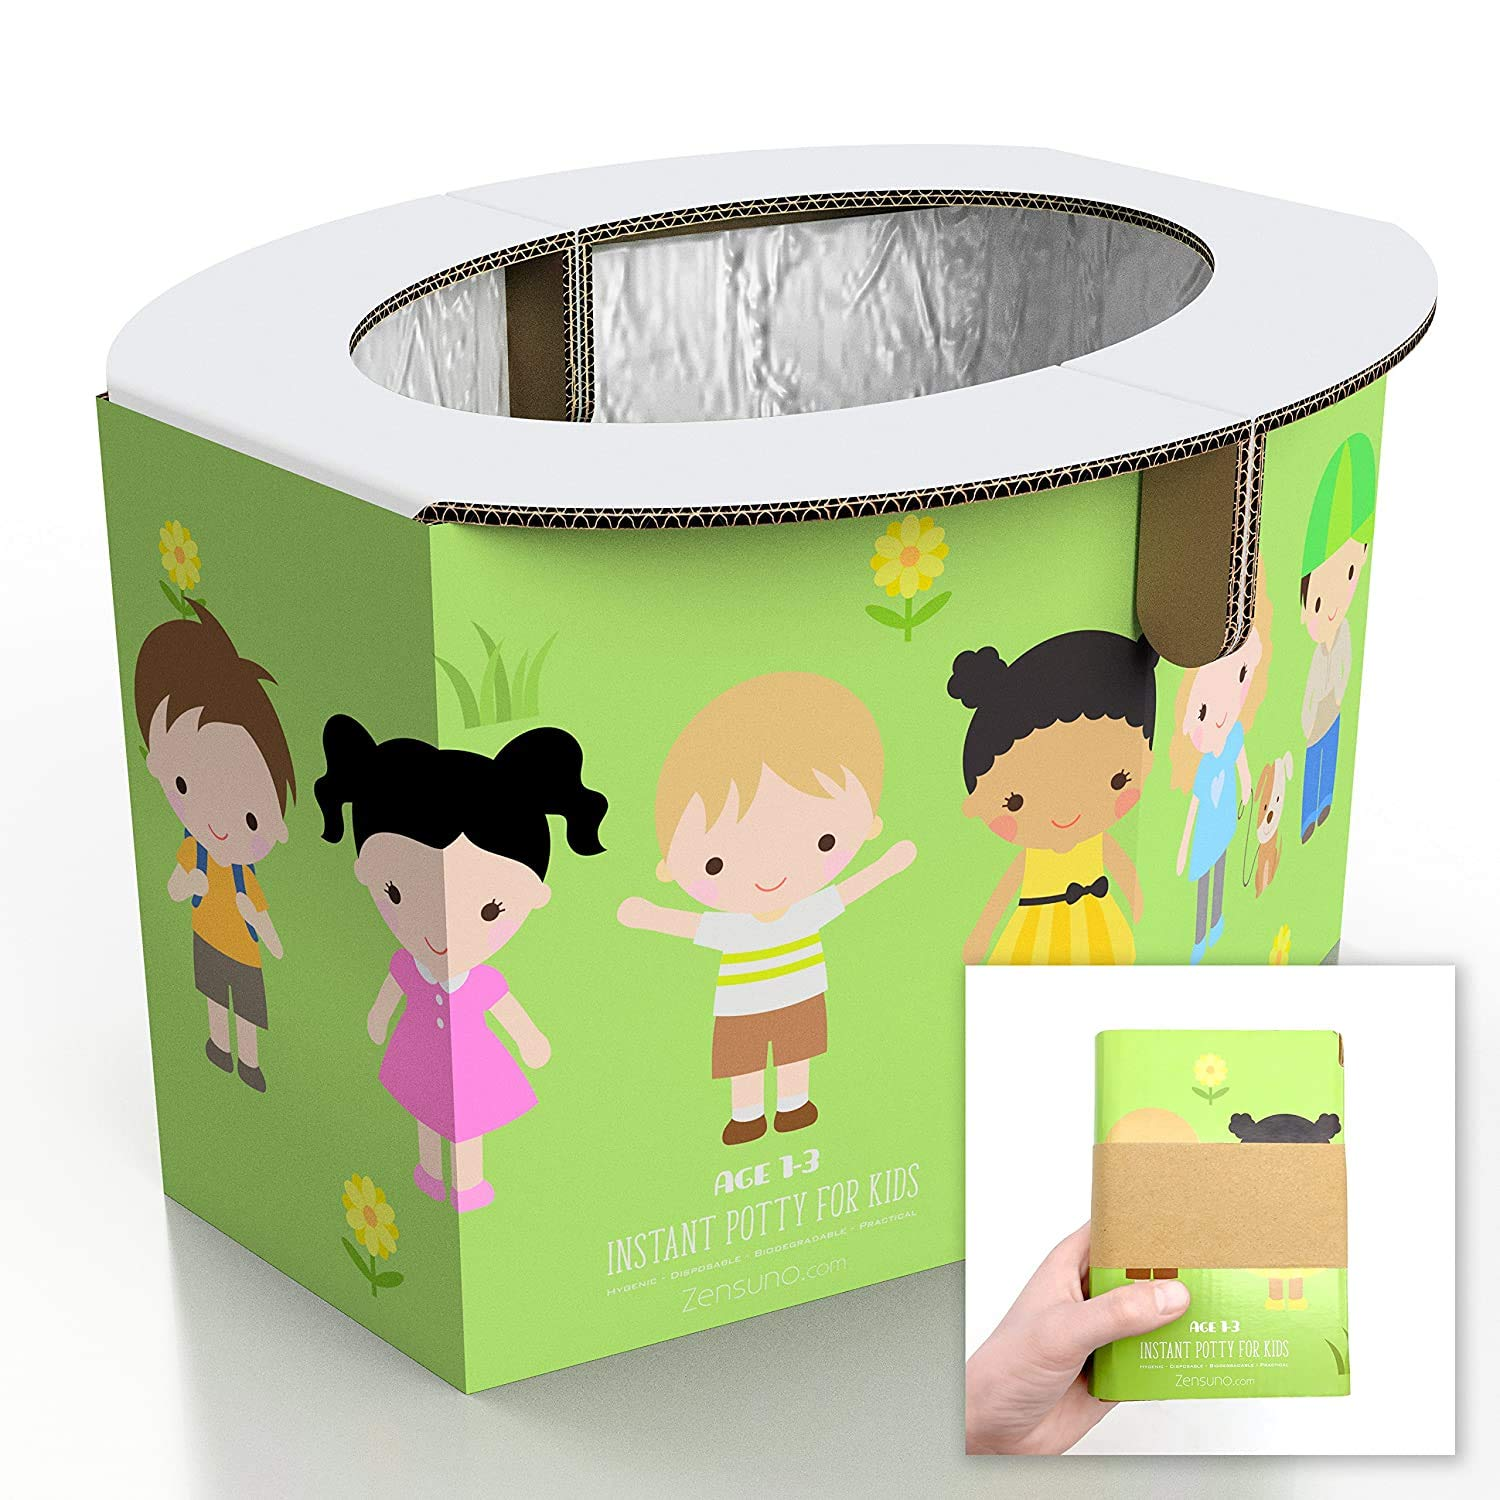 Emergency Camping Commode for Children Kids Traveling Folding Toilet Instant Potty Carry Potty for Toddlers Portable Kids Potty